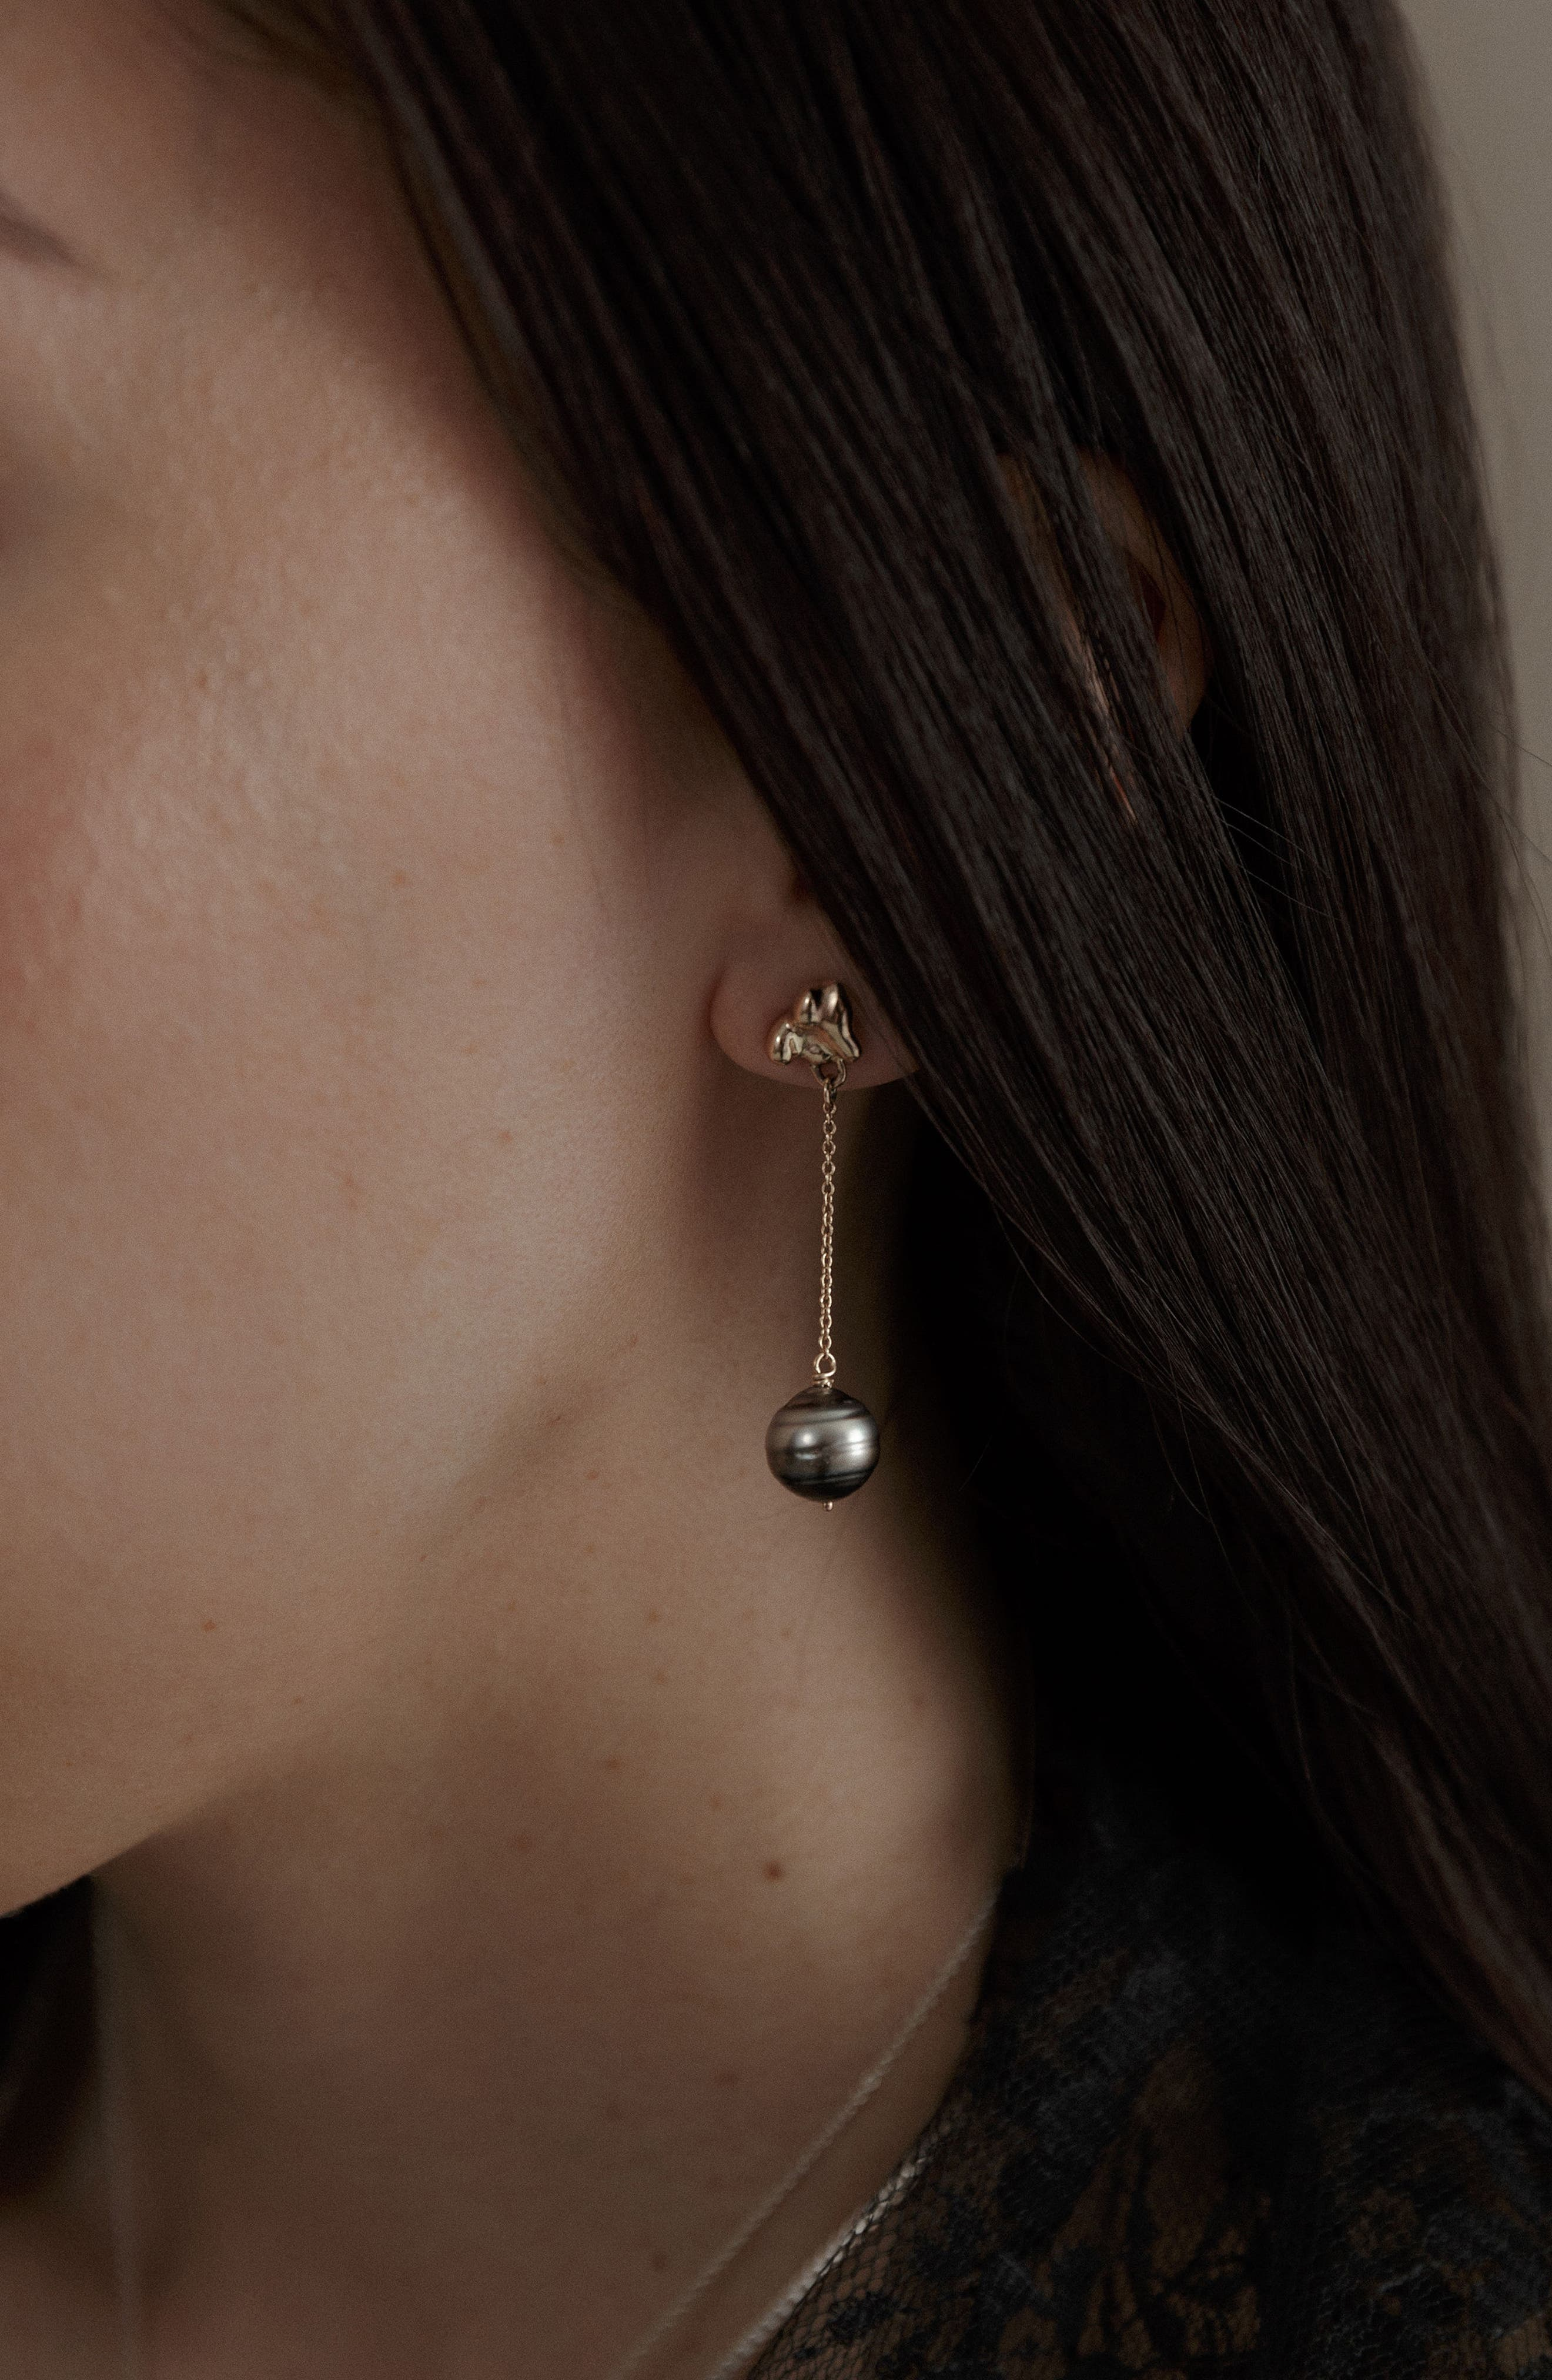 Black Pearl Drop Earrings,                             Alternate thumbnail 6, color,                             Gold/ Black Pearl